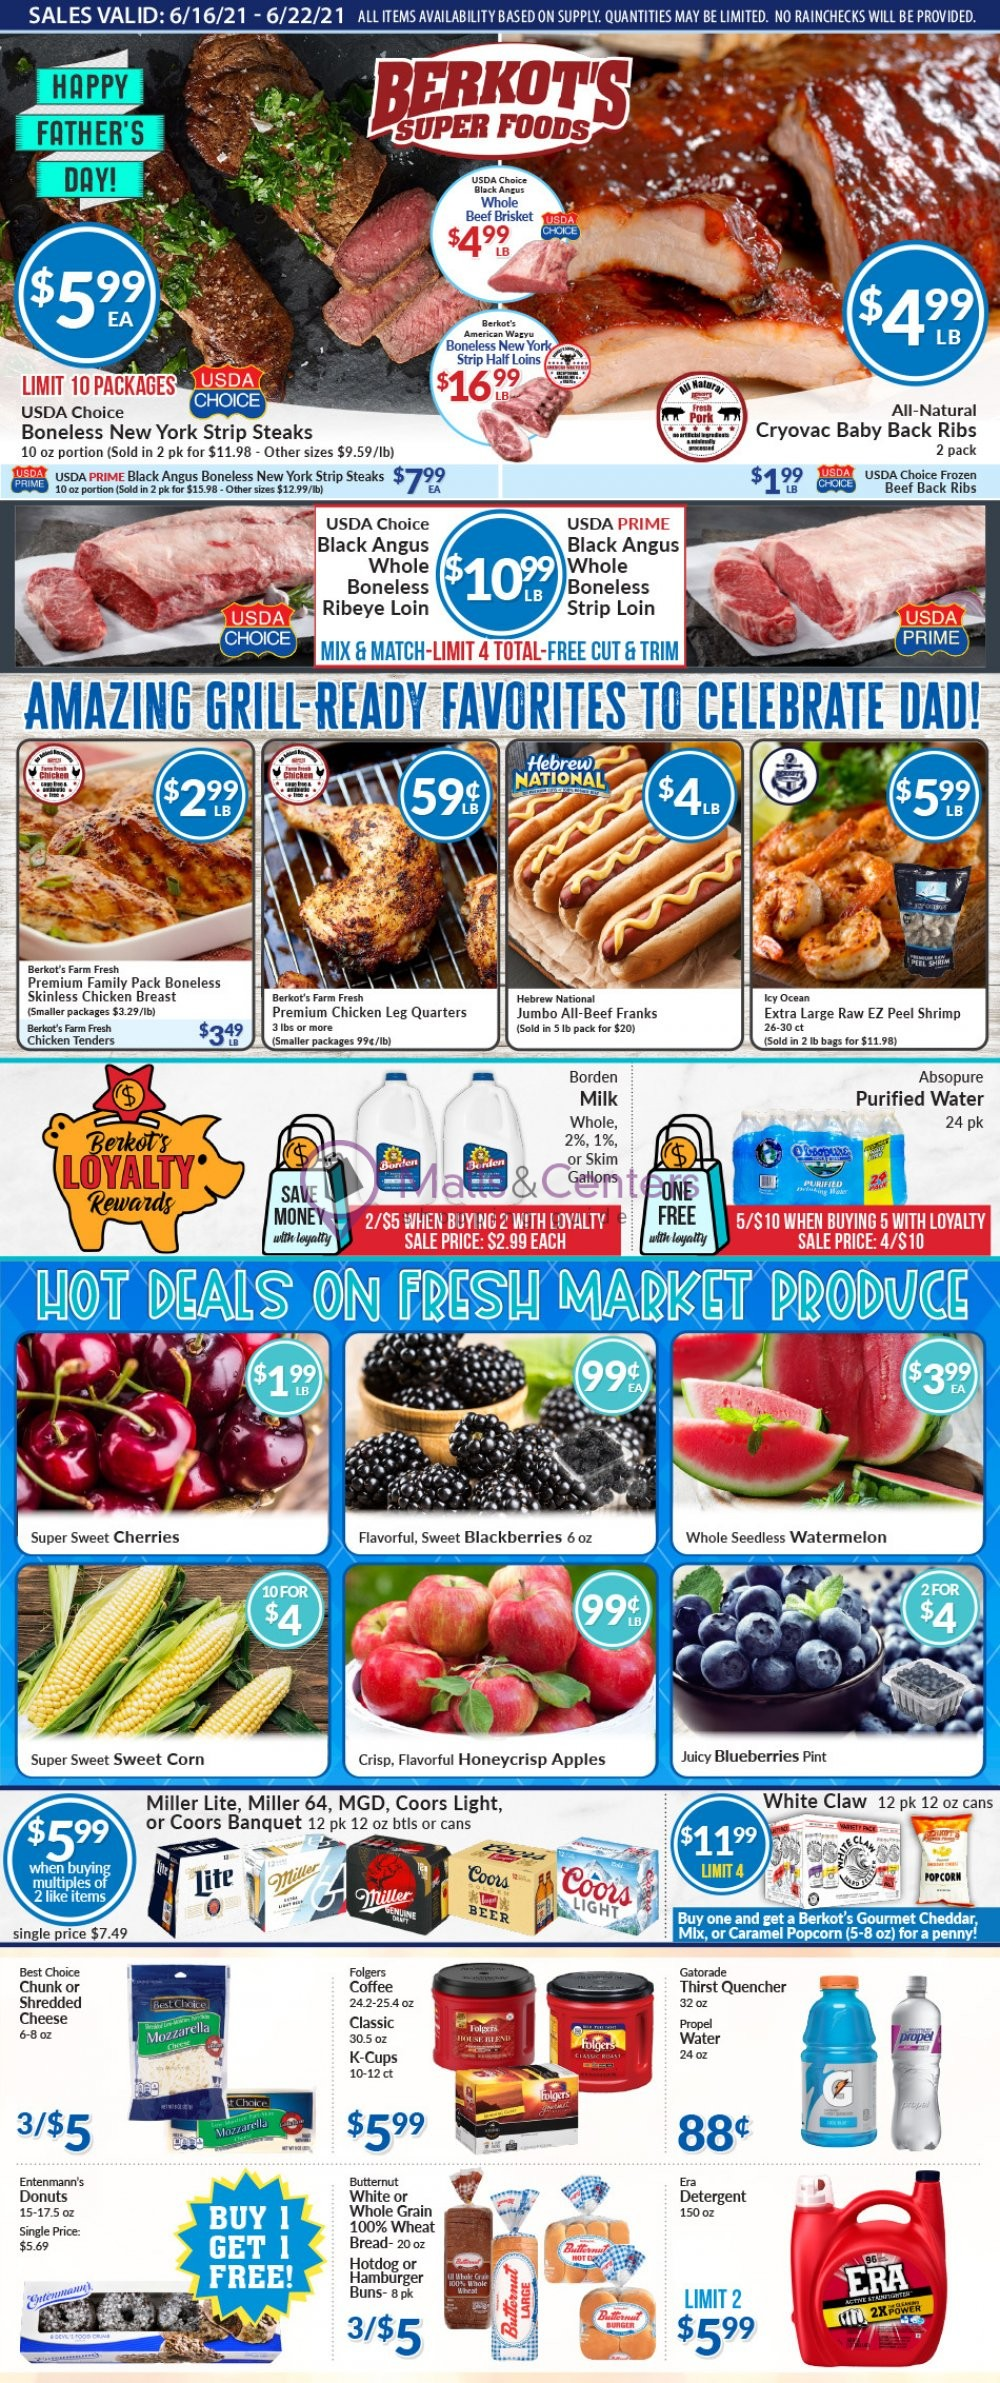 weekly ads Berkot's Super Foods - page 1 - mallscenters.com